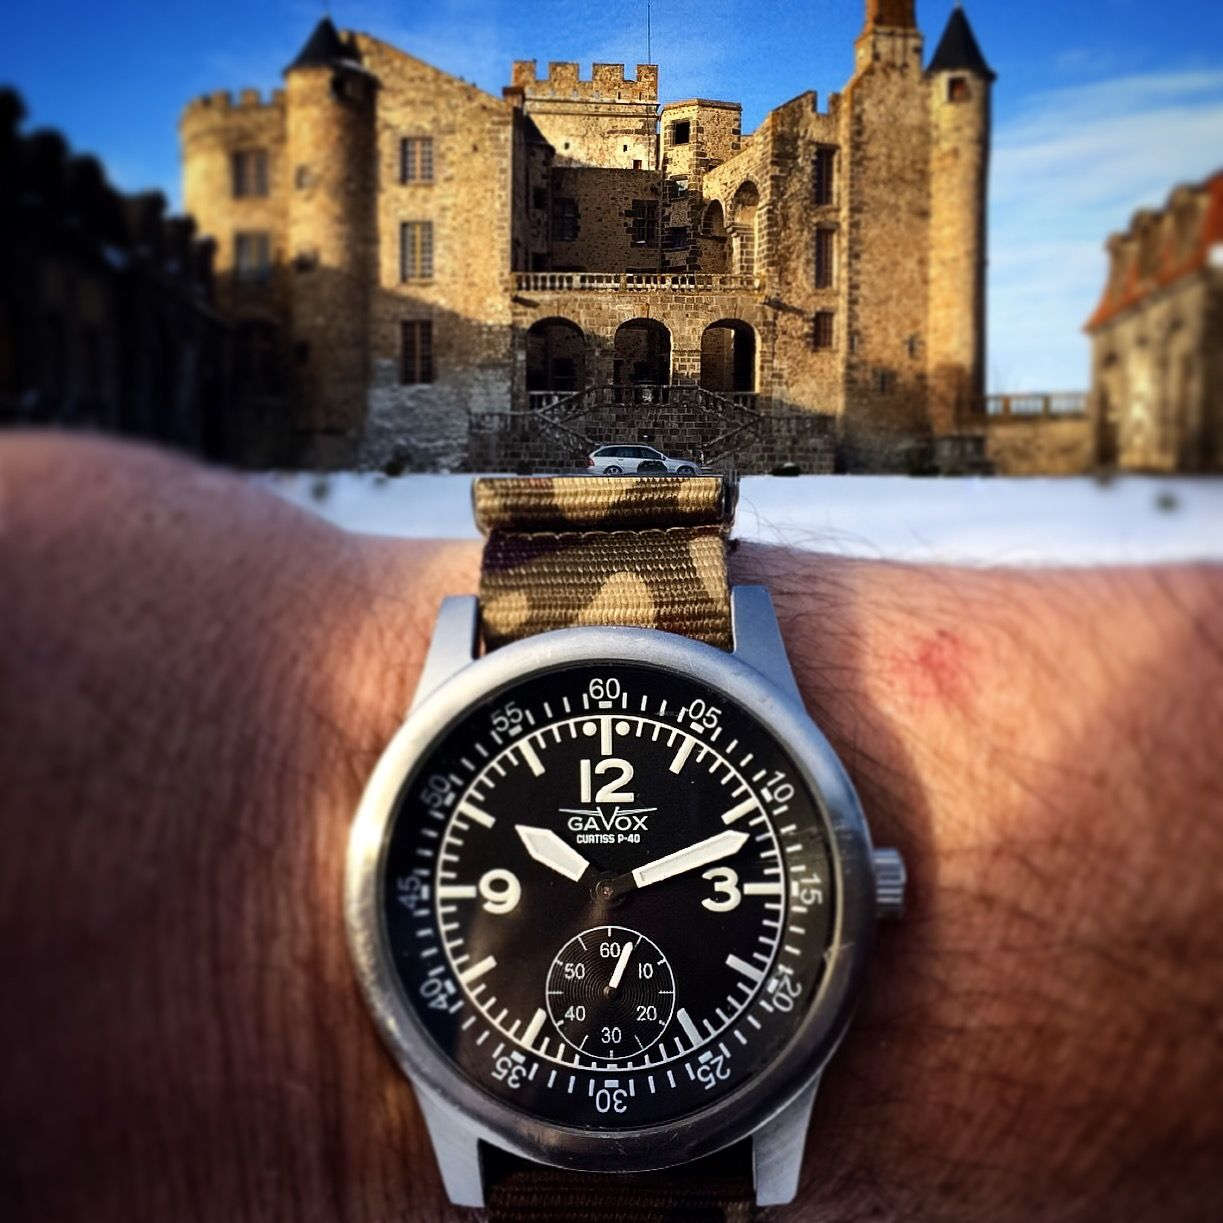 Here's a shot made in front of the French Castel of